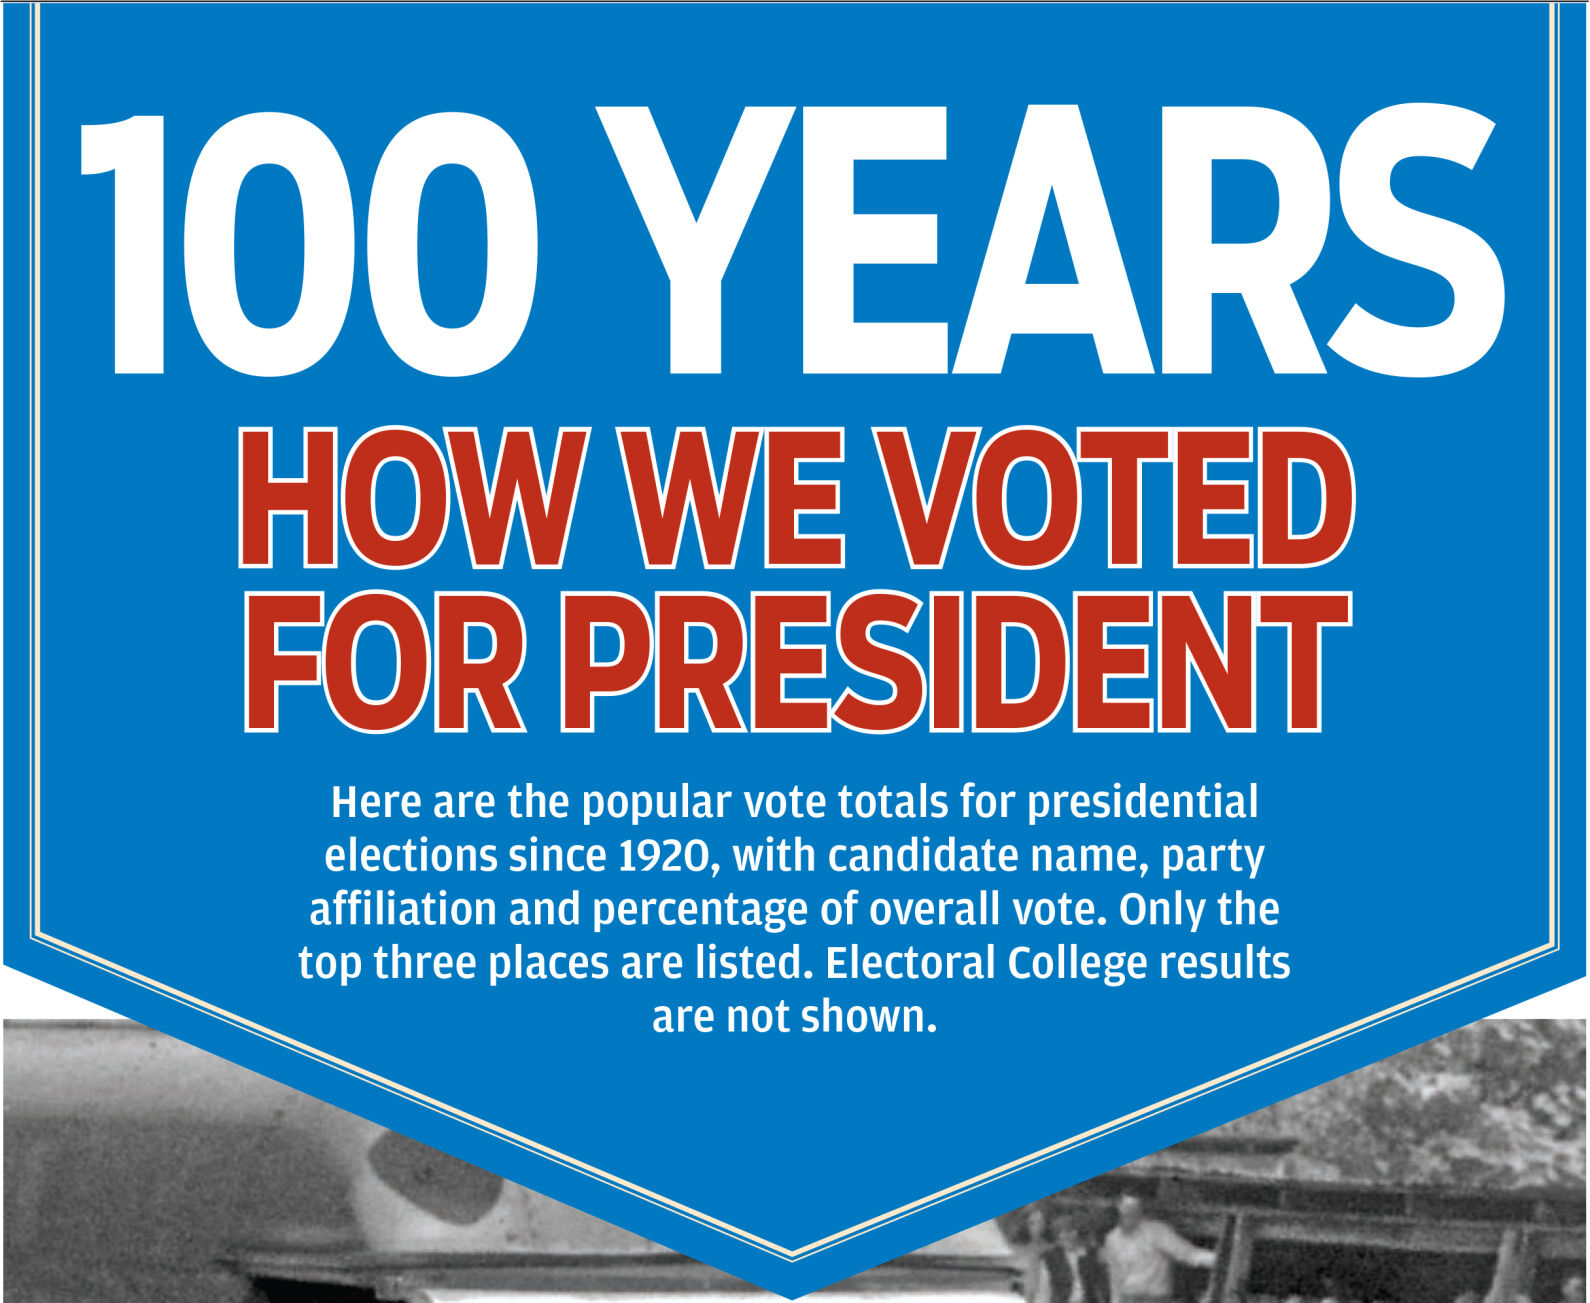 How Mclennan County Voted In Presidential Elections The Last 100 Years Local Govt And Politics Wacotrib Com